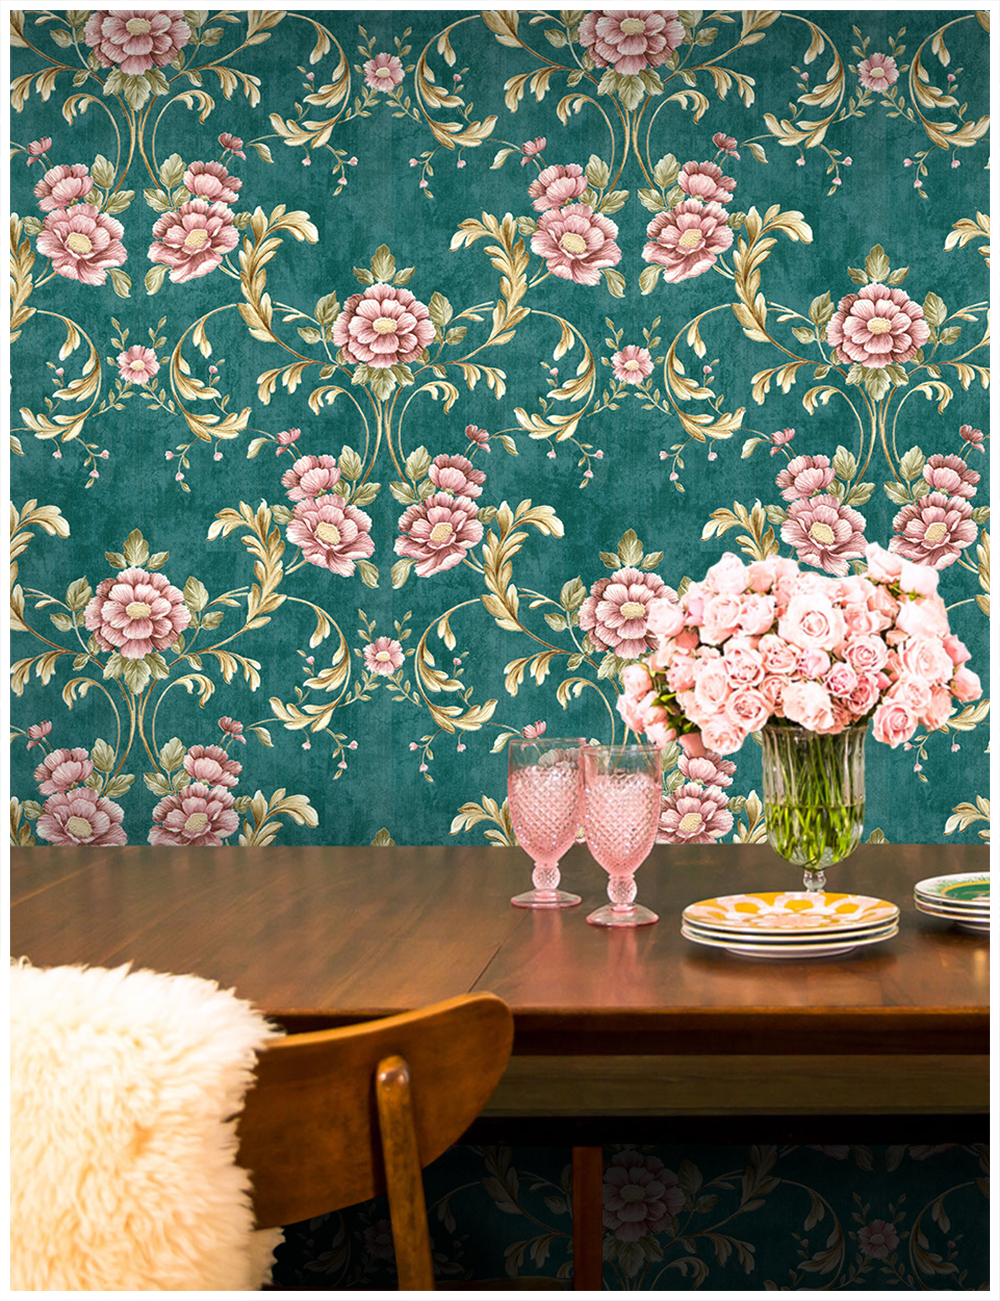 Haokhome Vintage Floral Wallpaper Country Style 0 53m 10m Green